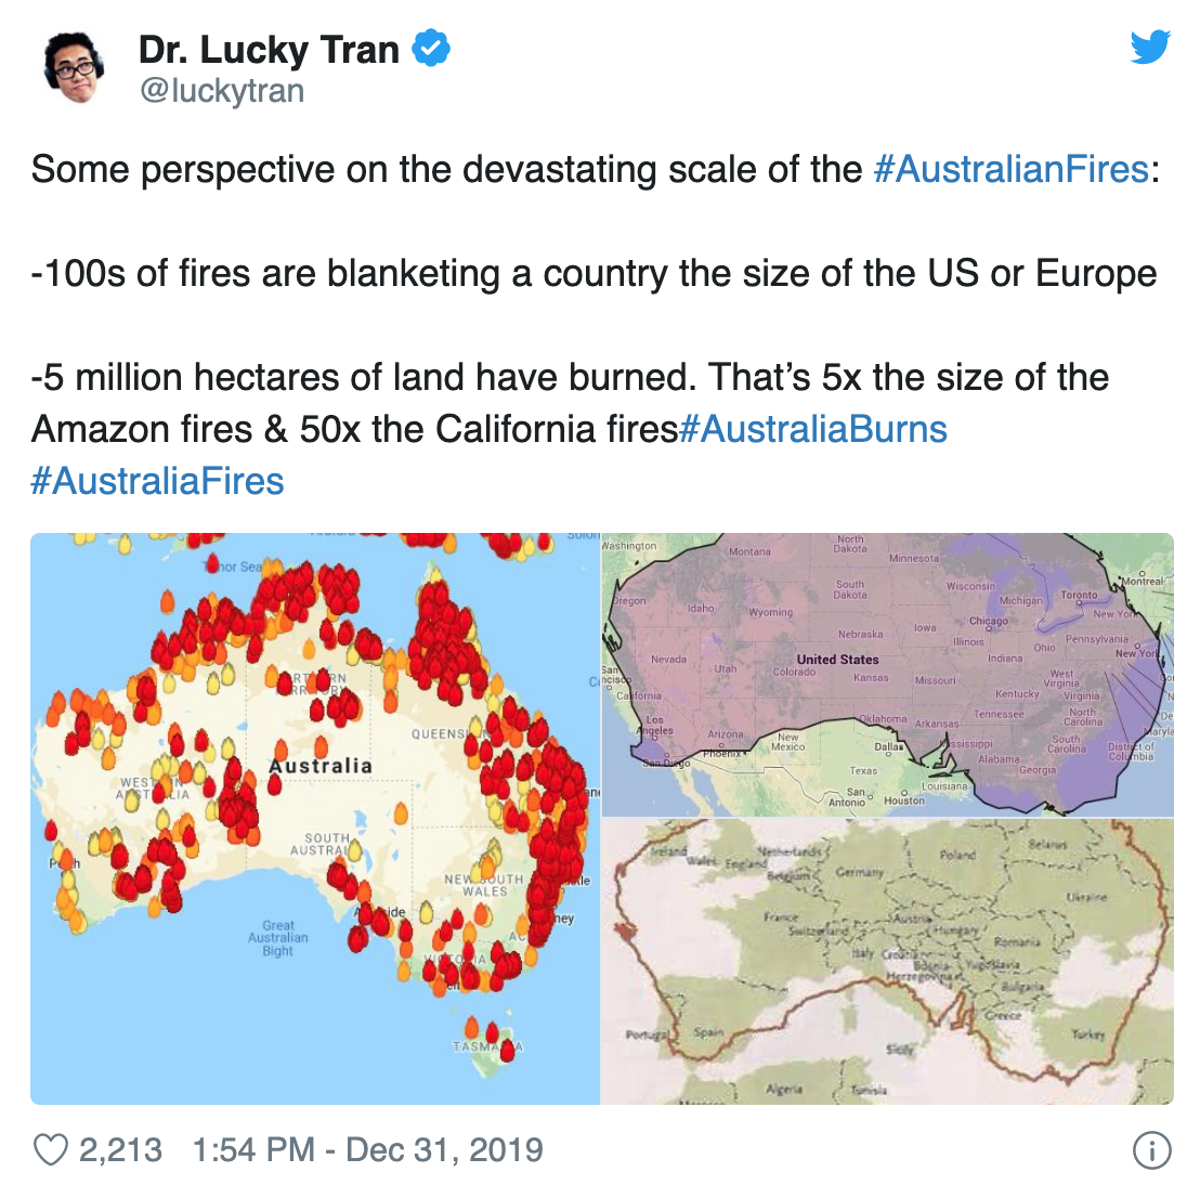 Some Stunning Perspective On The Australian Fires ...